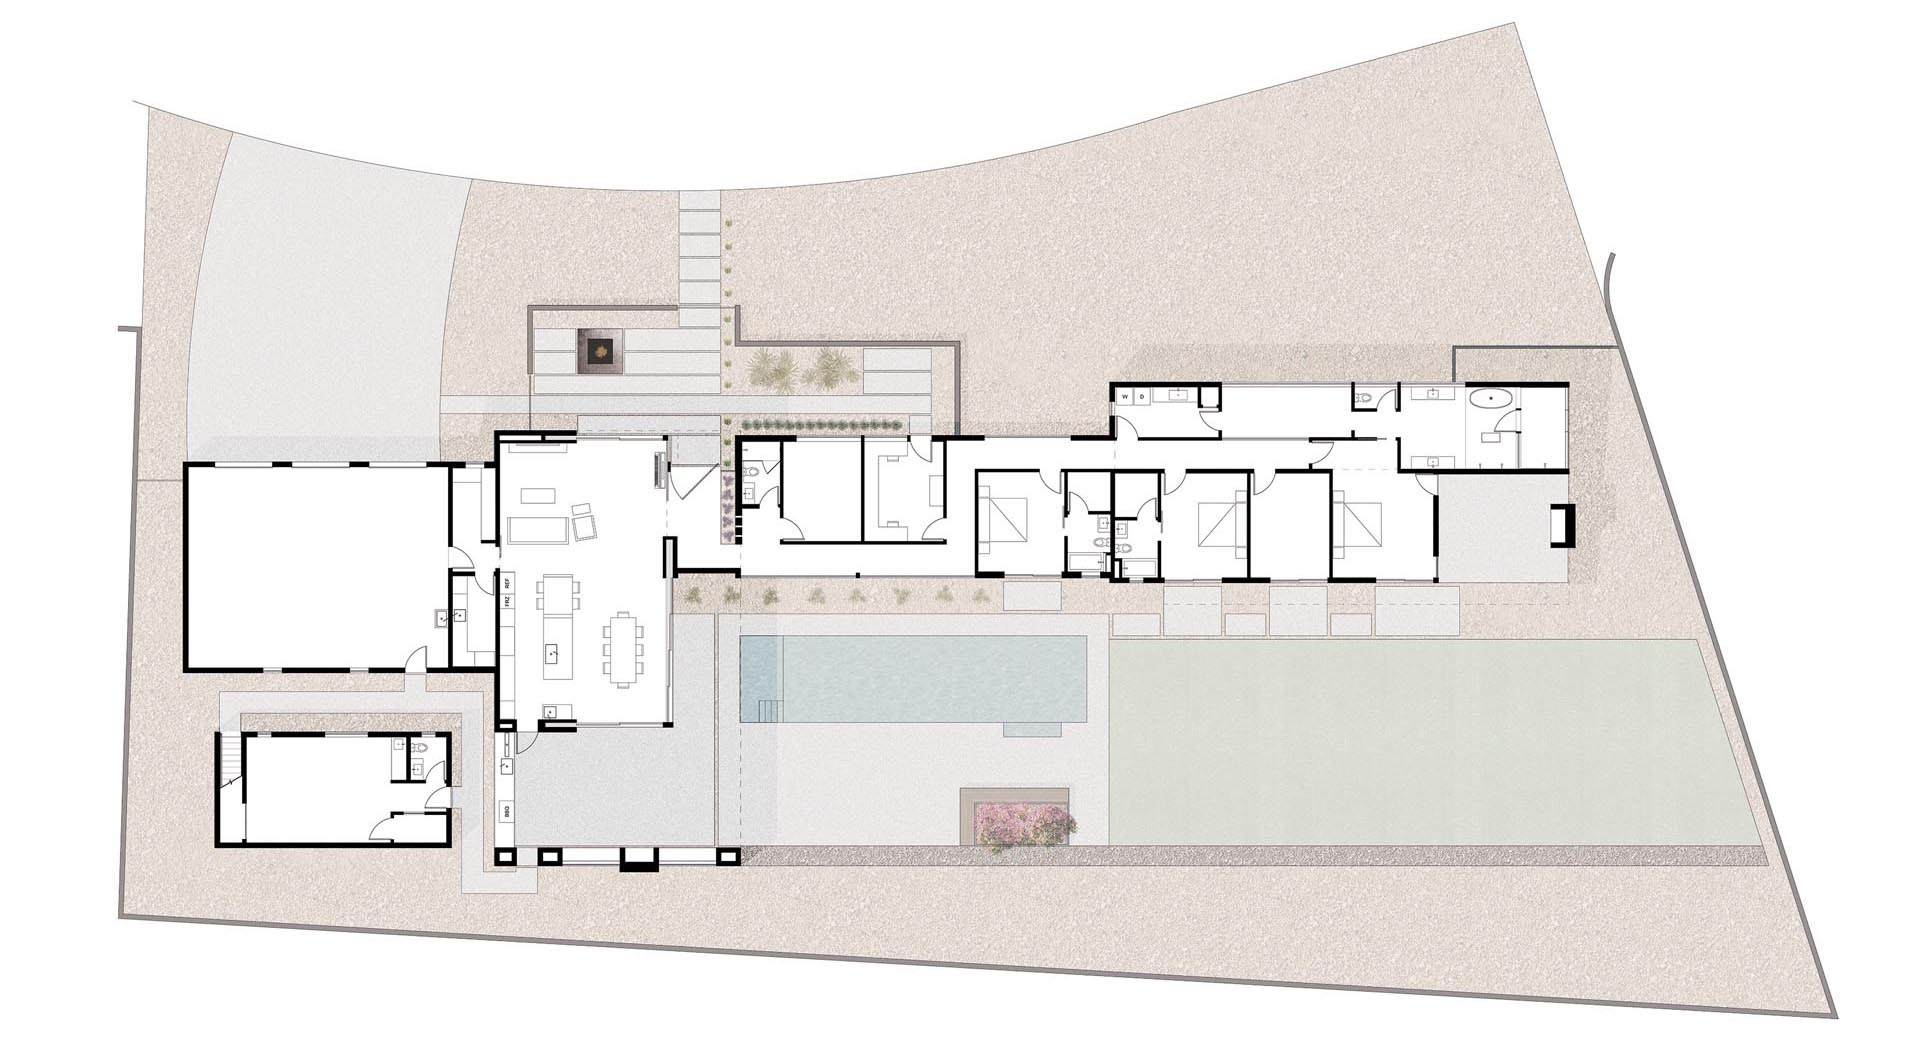 The floor plan of a modern house that has a great room, a large covered outdoor patio, and a swimming pool.